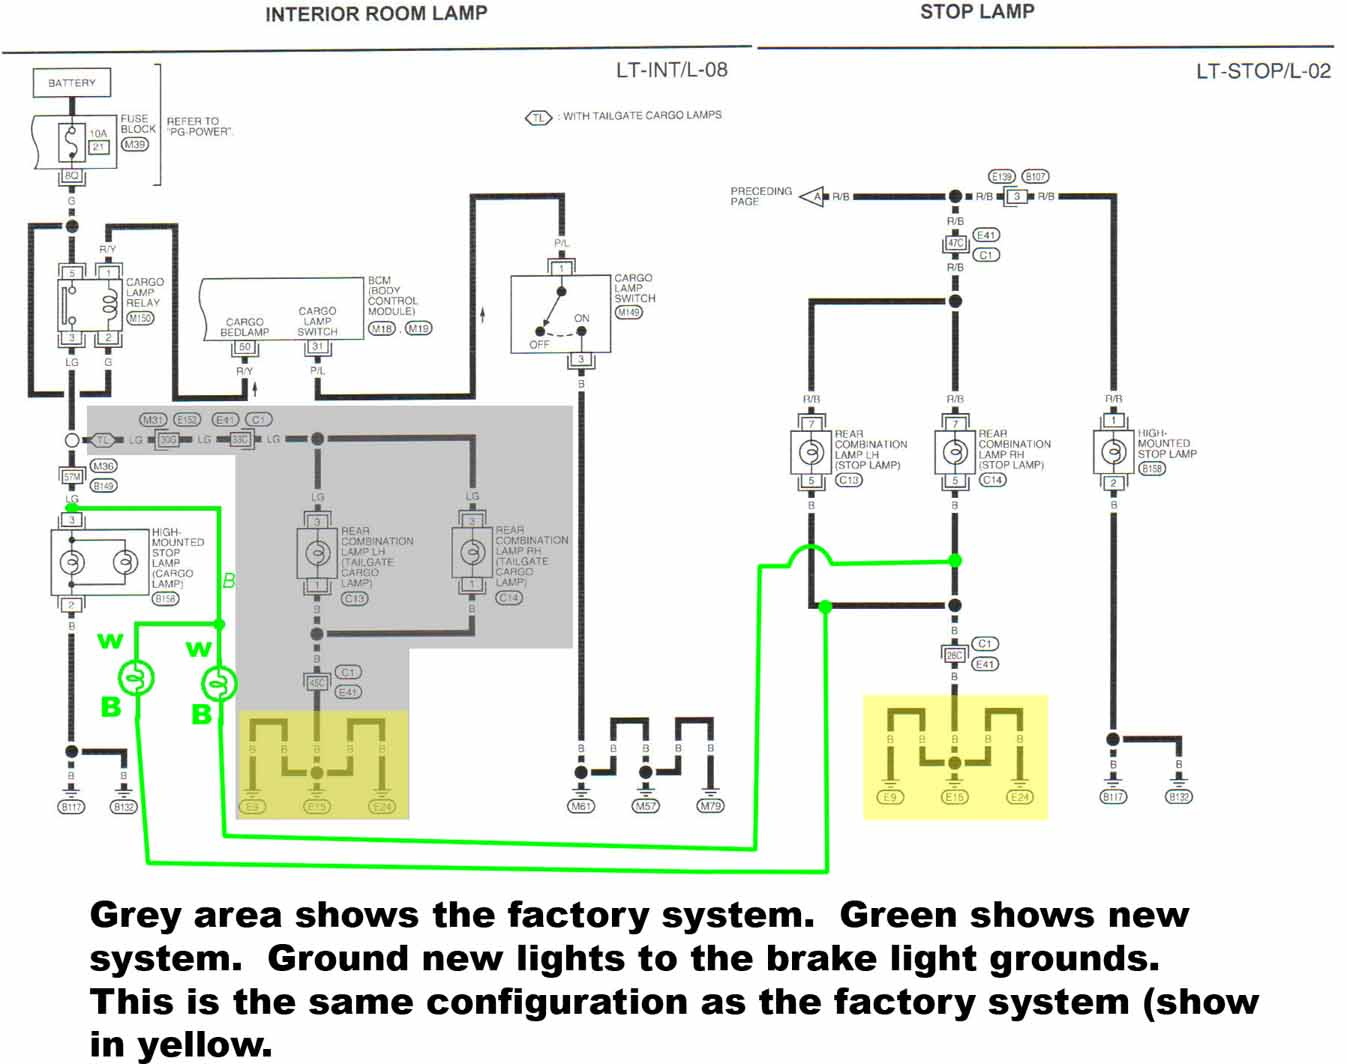 2008 Nissan Titan Brake Wiring Diagram Start Building A 2005 Fuse Box 20 Tailgate Cargo Light Mod Forum Rh Titantalk Com Stereo